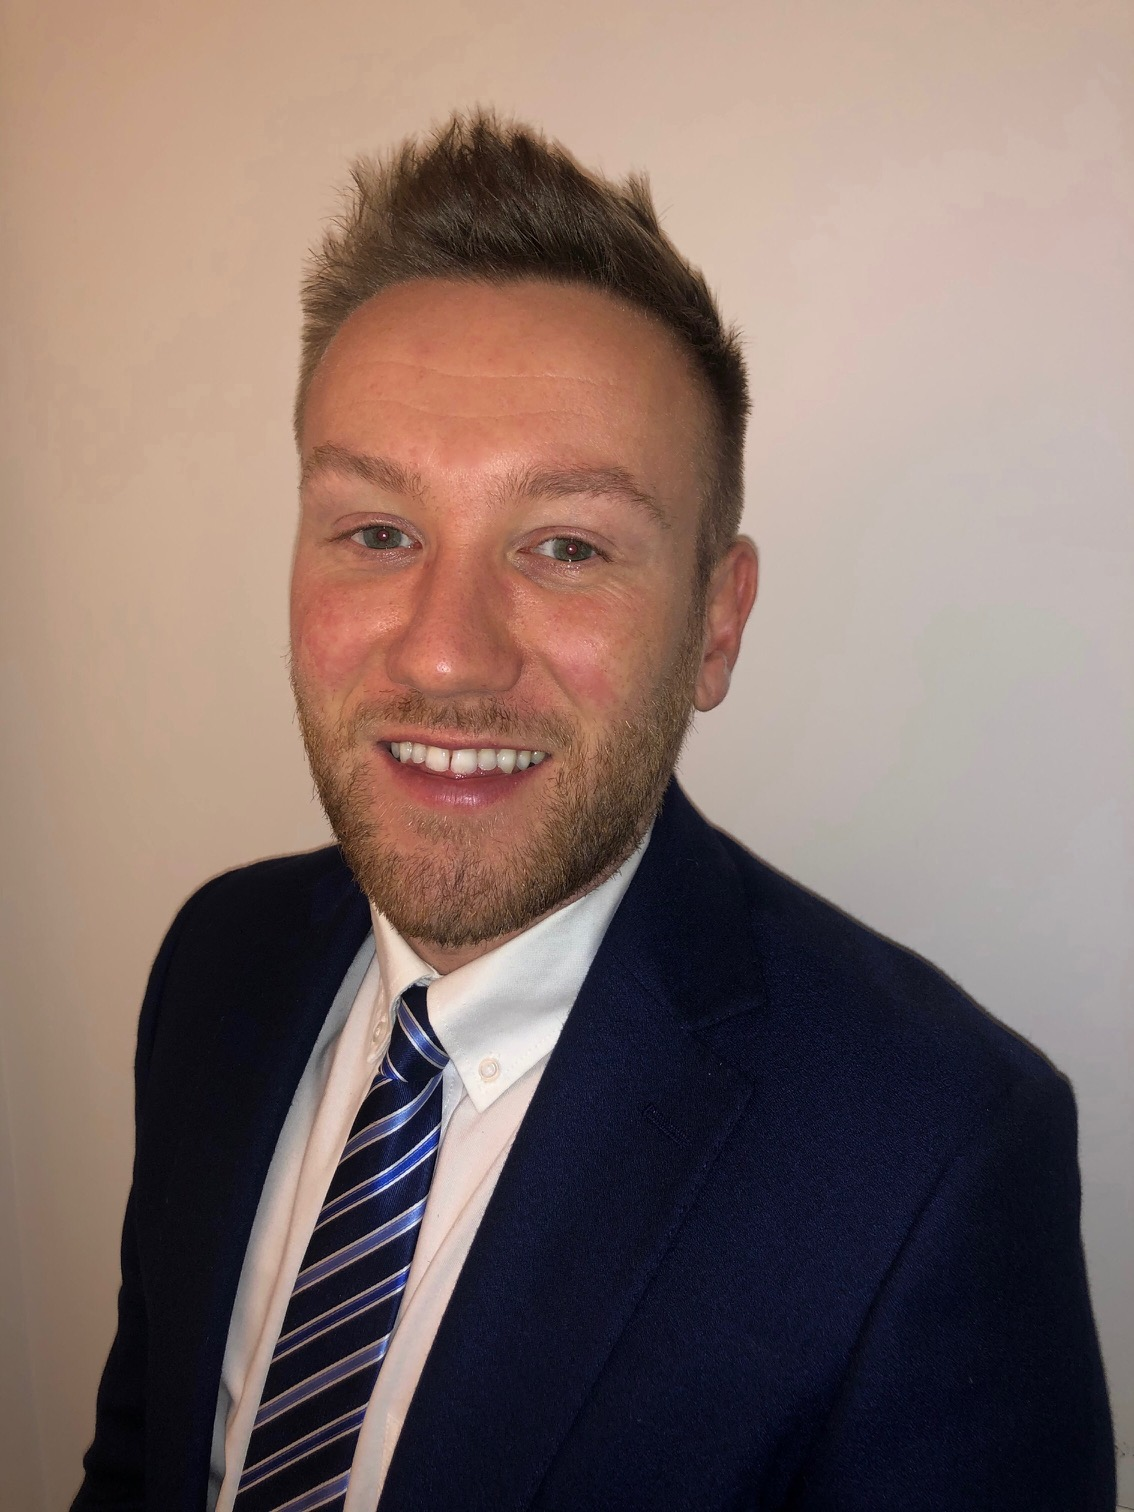 Franchise role marks fresh start for experienced business broker